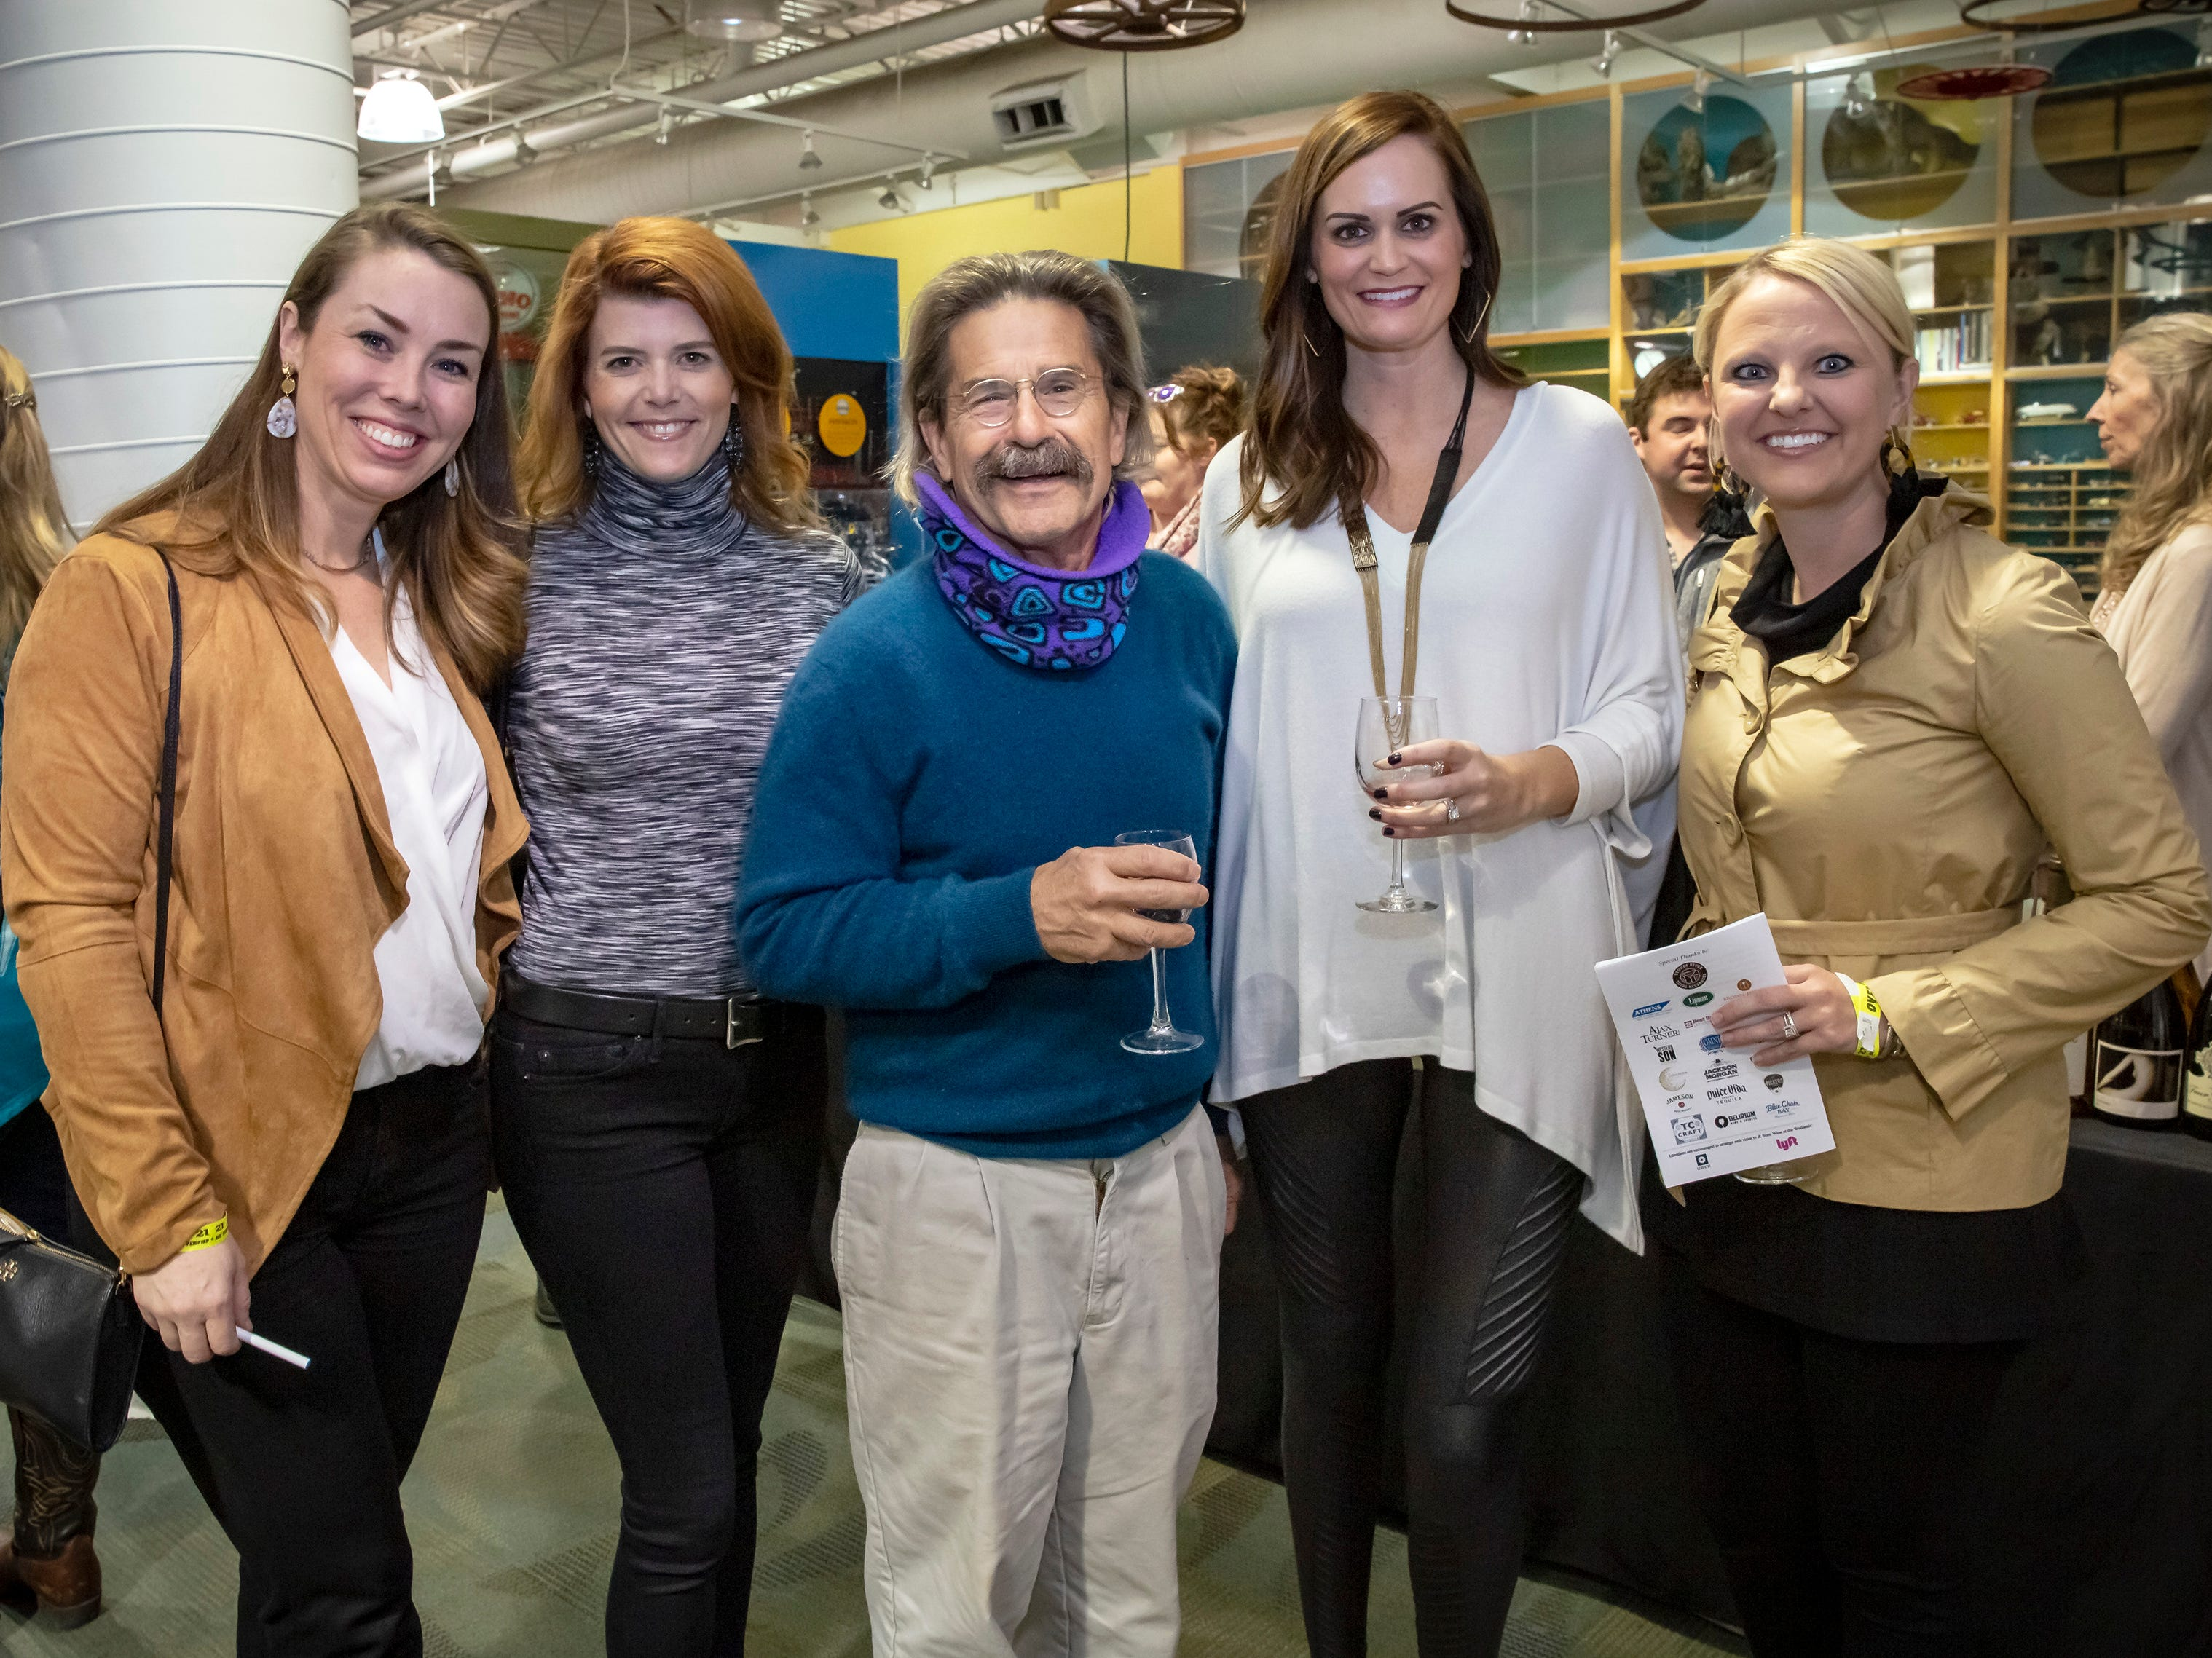 Gina DeJean, Lindsey Fournier, Dr. Joe Little, Kristen Taylor and Katherine Layman at the 6th annual Wine and Whiskey at the Wetlands event held at the Discovery Center.